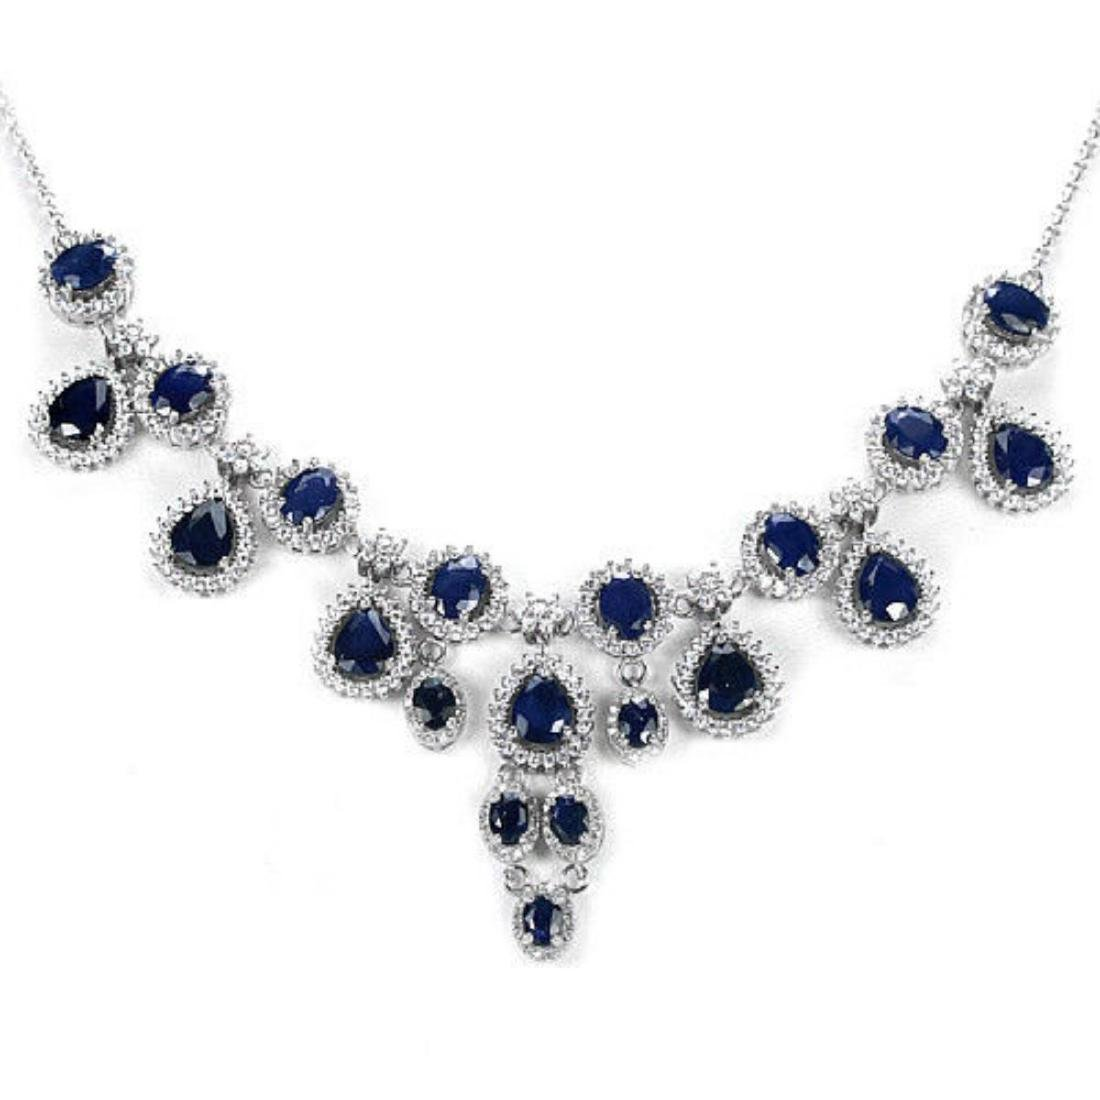 Natural BLUE SAPPHIRE 135 Ct Necklace - 3